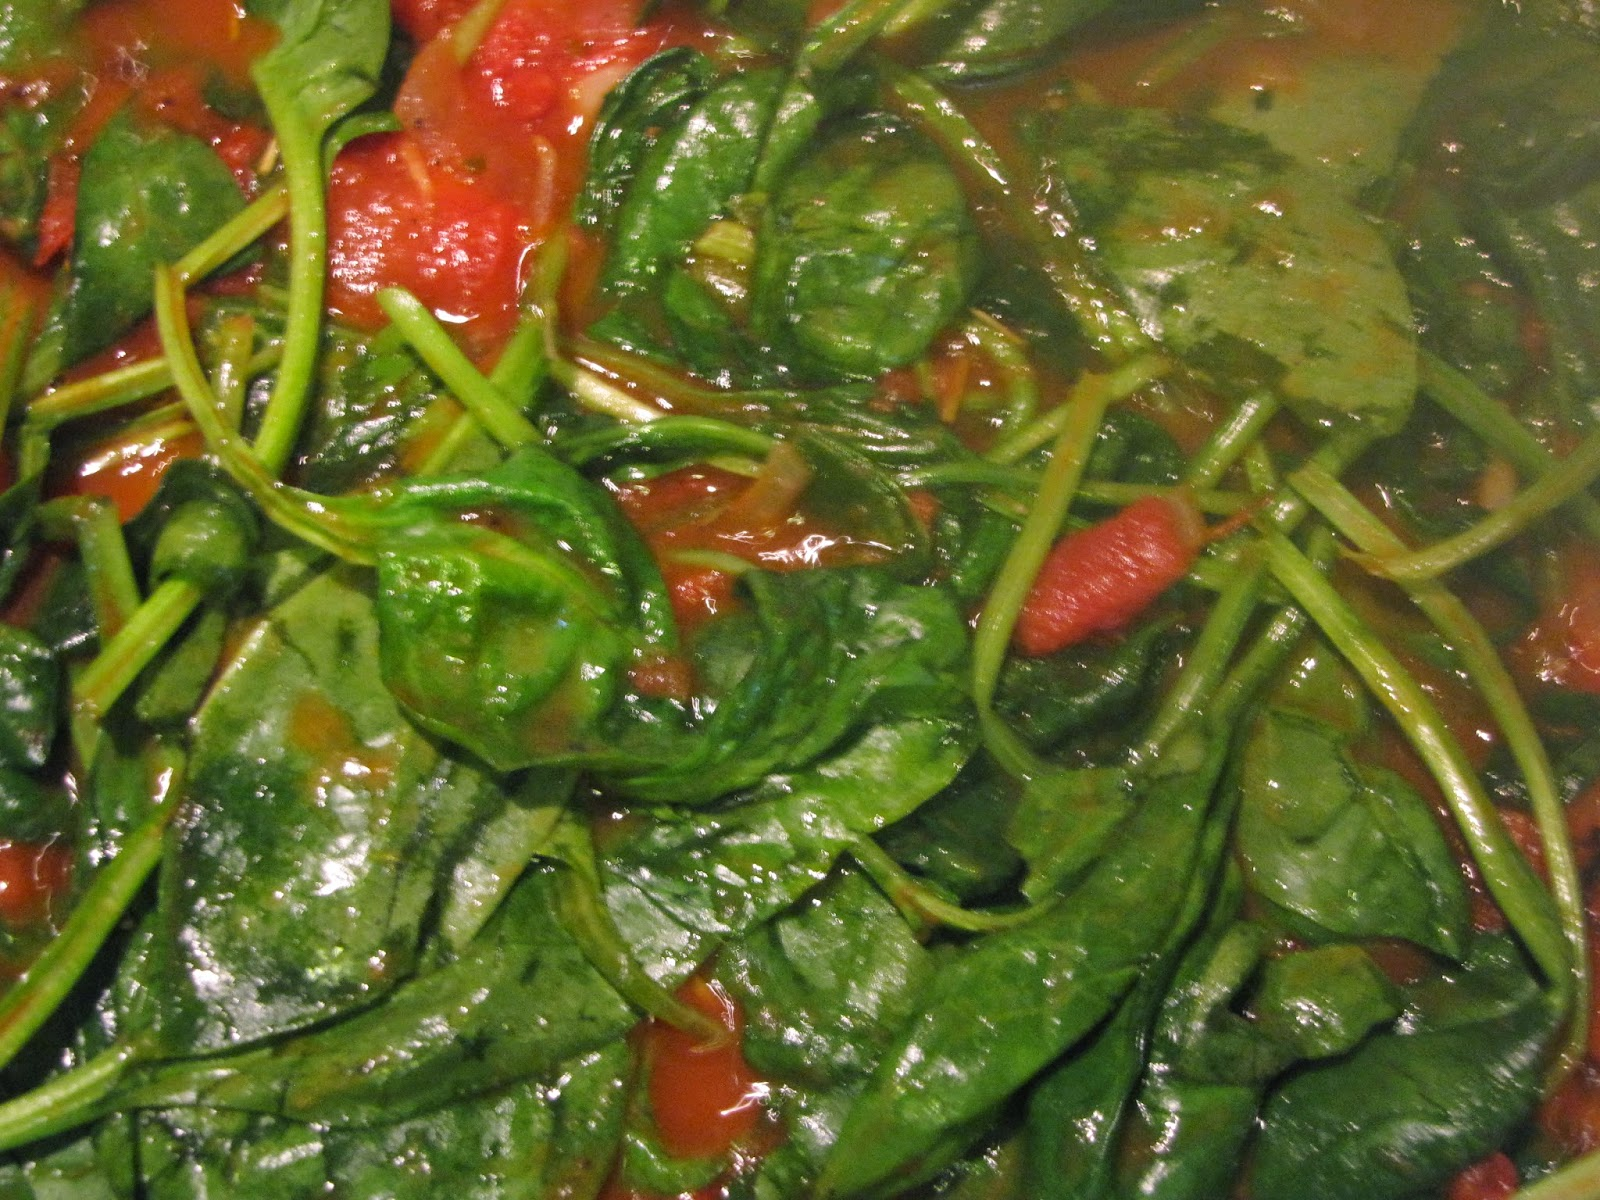 Partly Wilted Spinach Leaves in Tomato Sauce